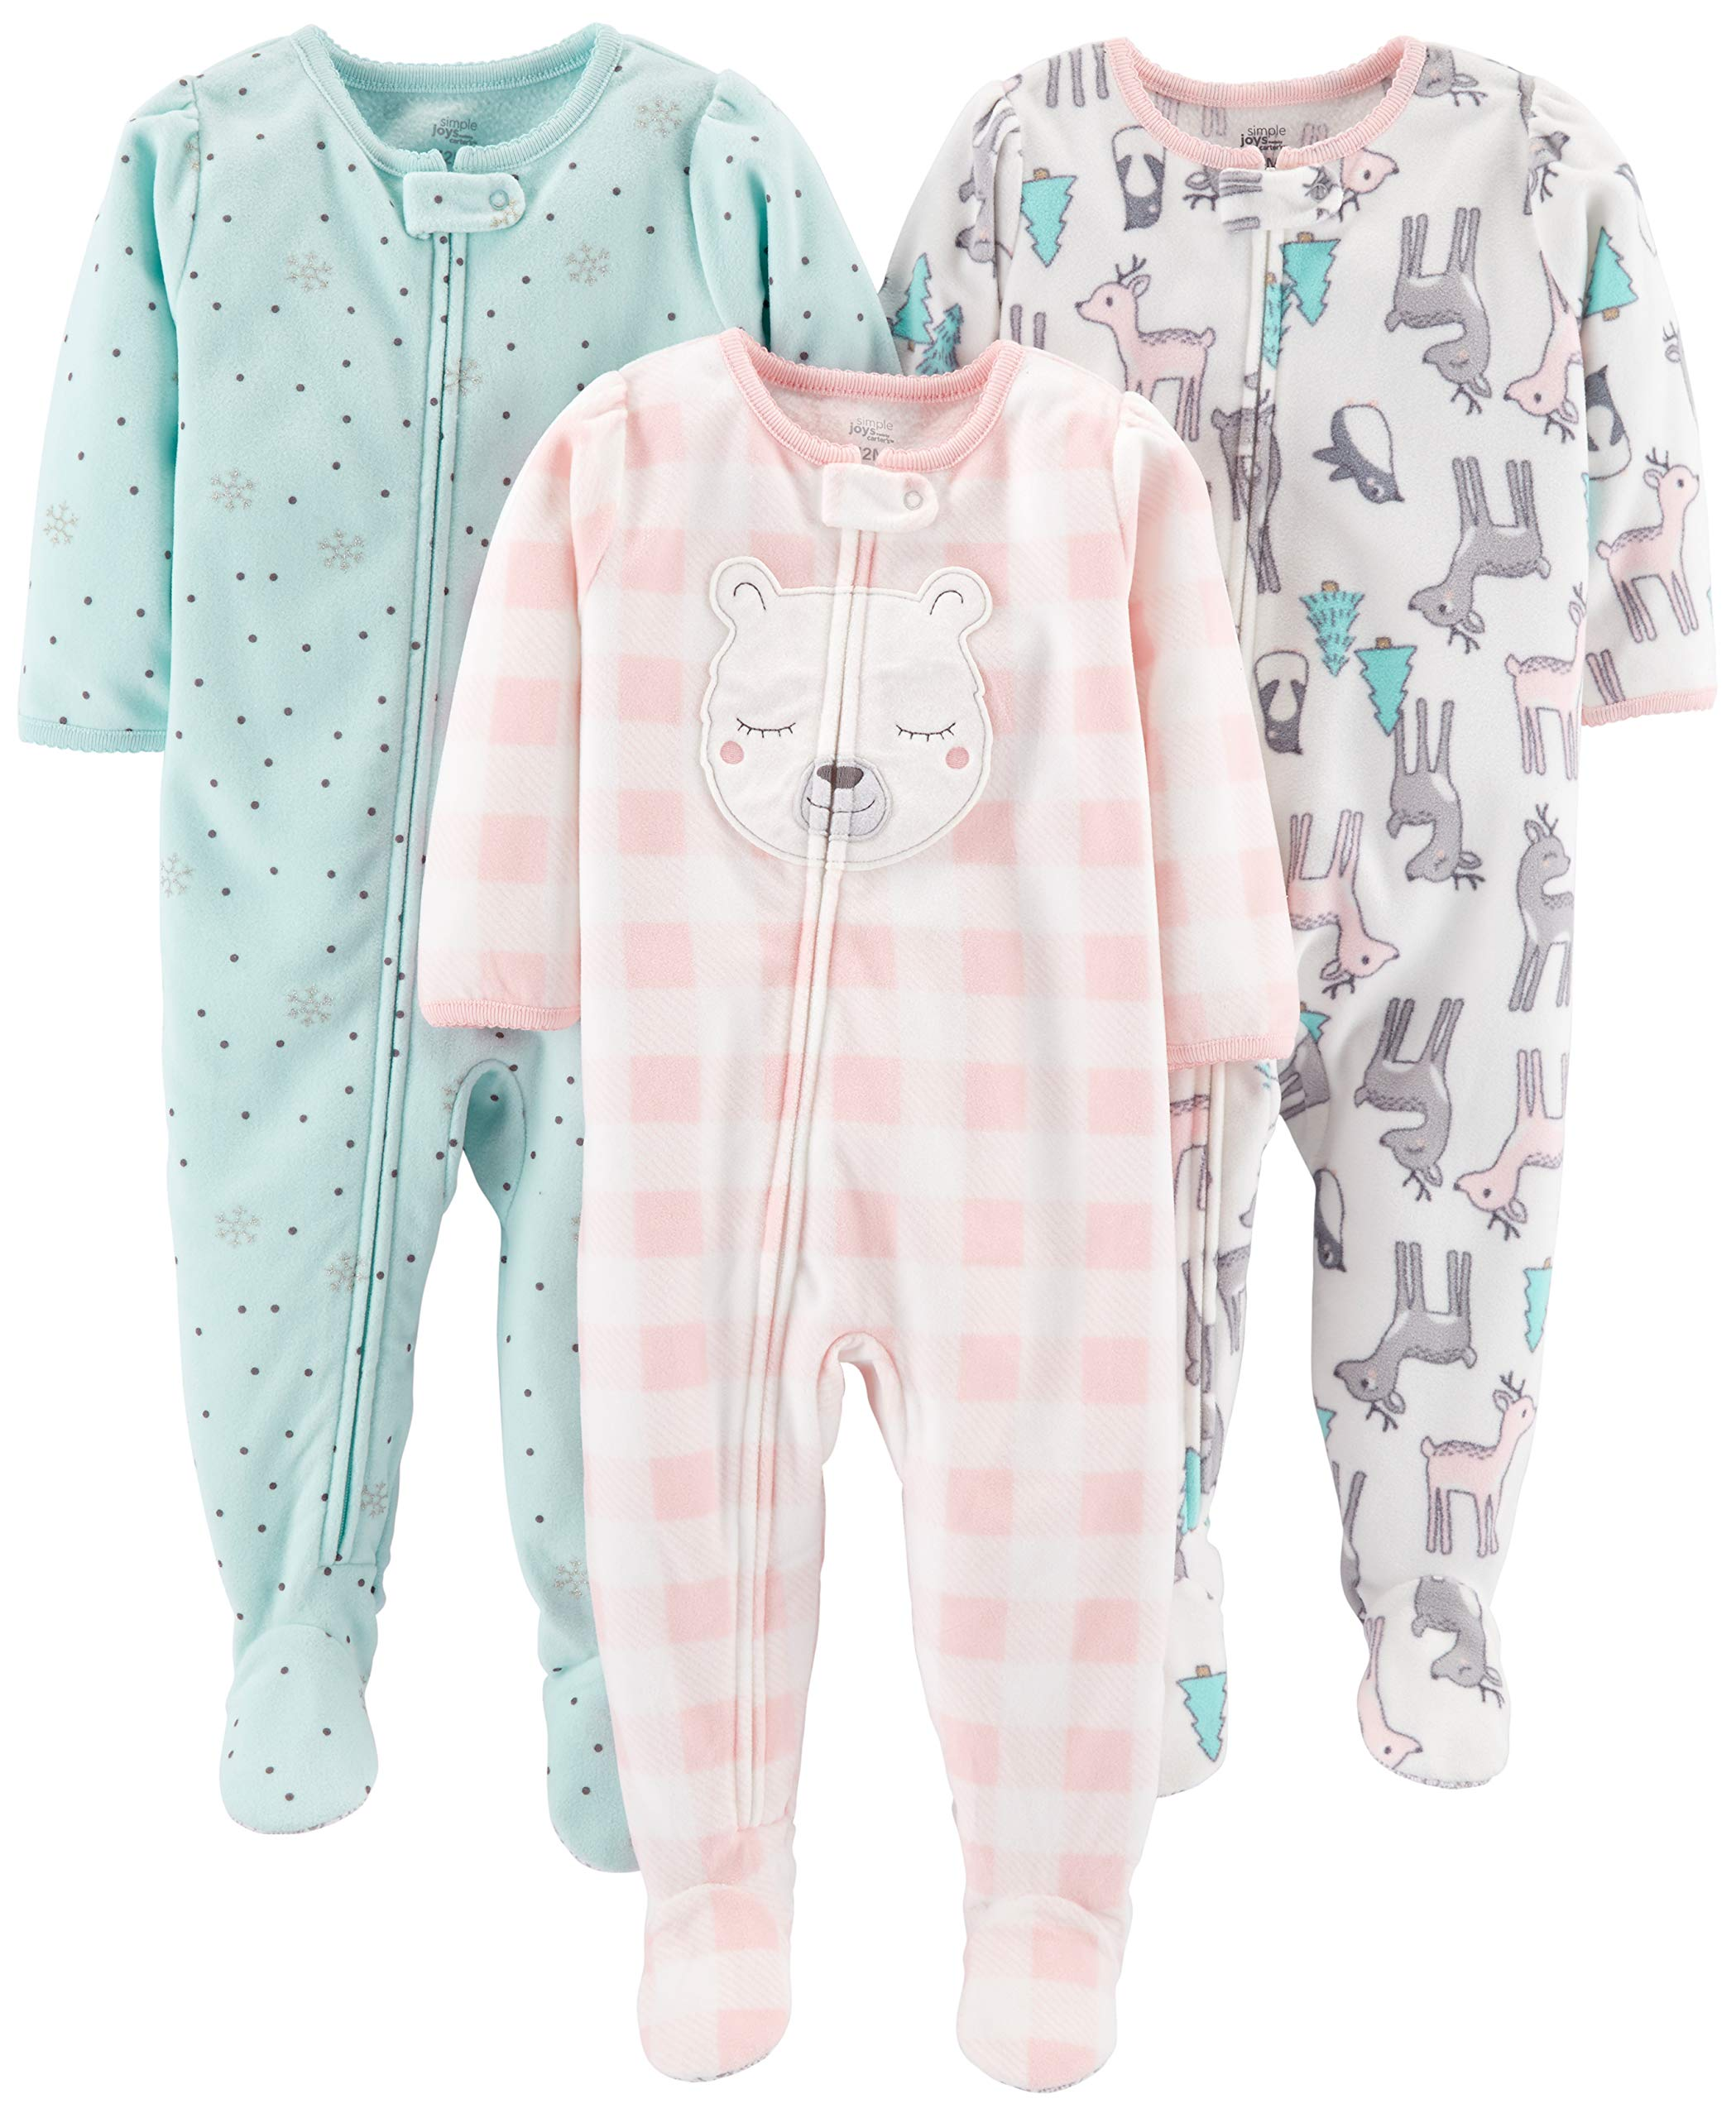 Simple Joys by Carter's Girls' Toddler 3-Pack Loose Fit Flame Resistant Fleece Footed Pajamas, Pink Deer/Blue Snowflakes/Pink Check, 3T by Simple Joys by Carter's